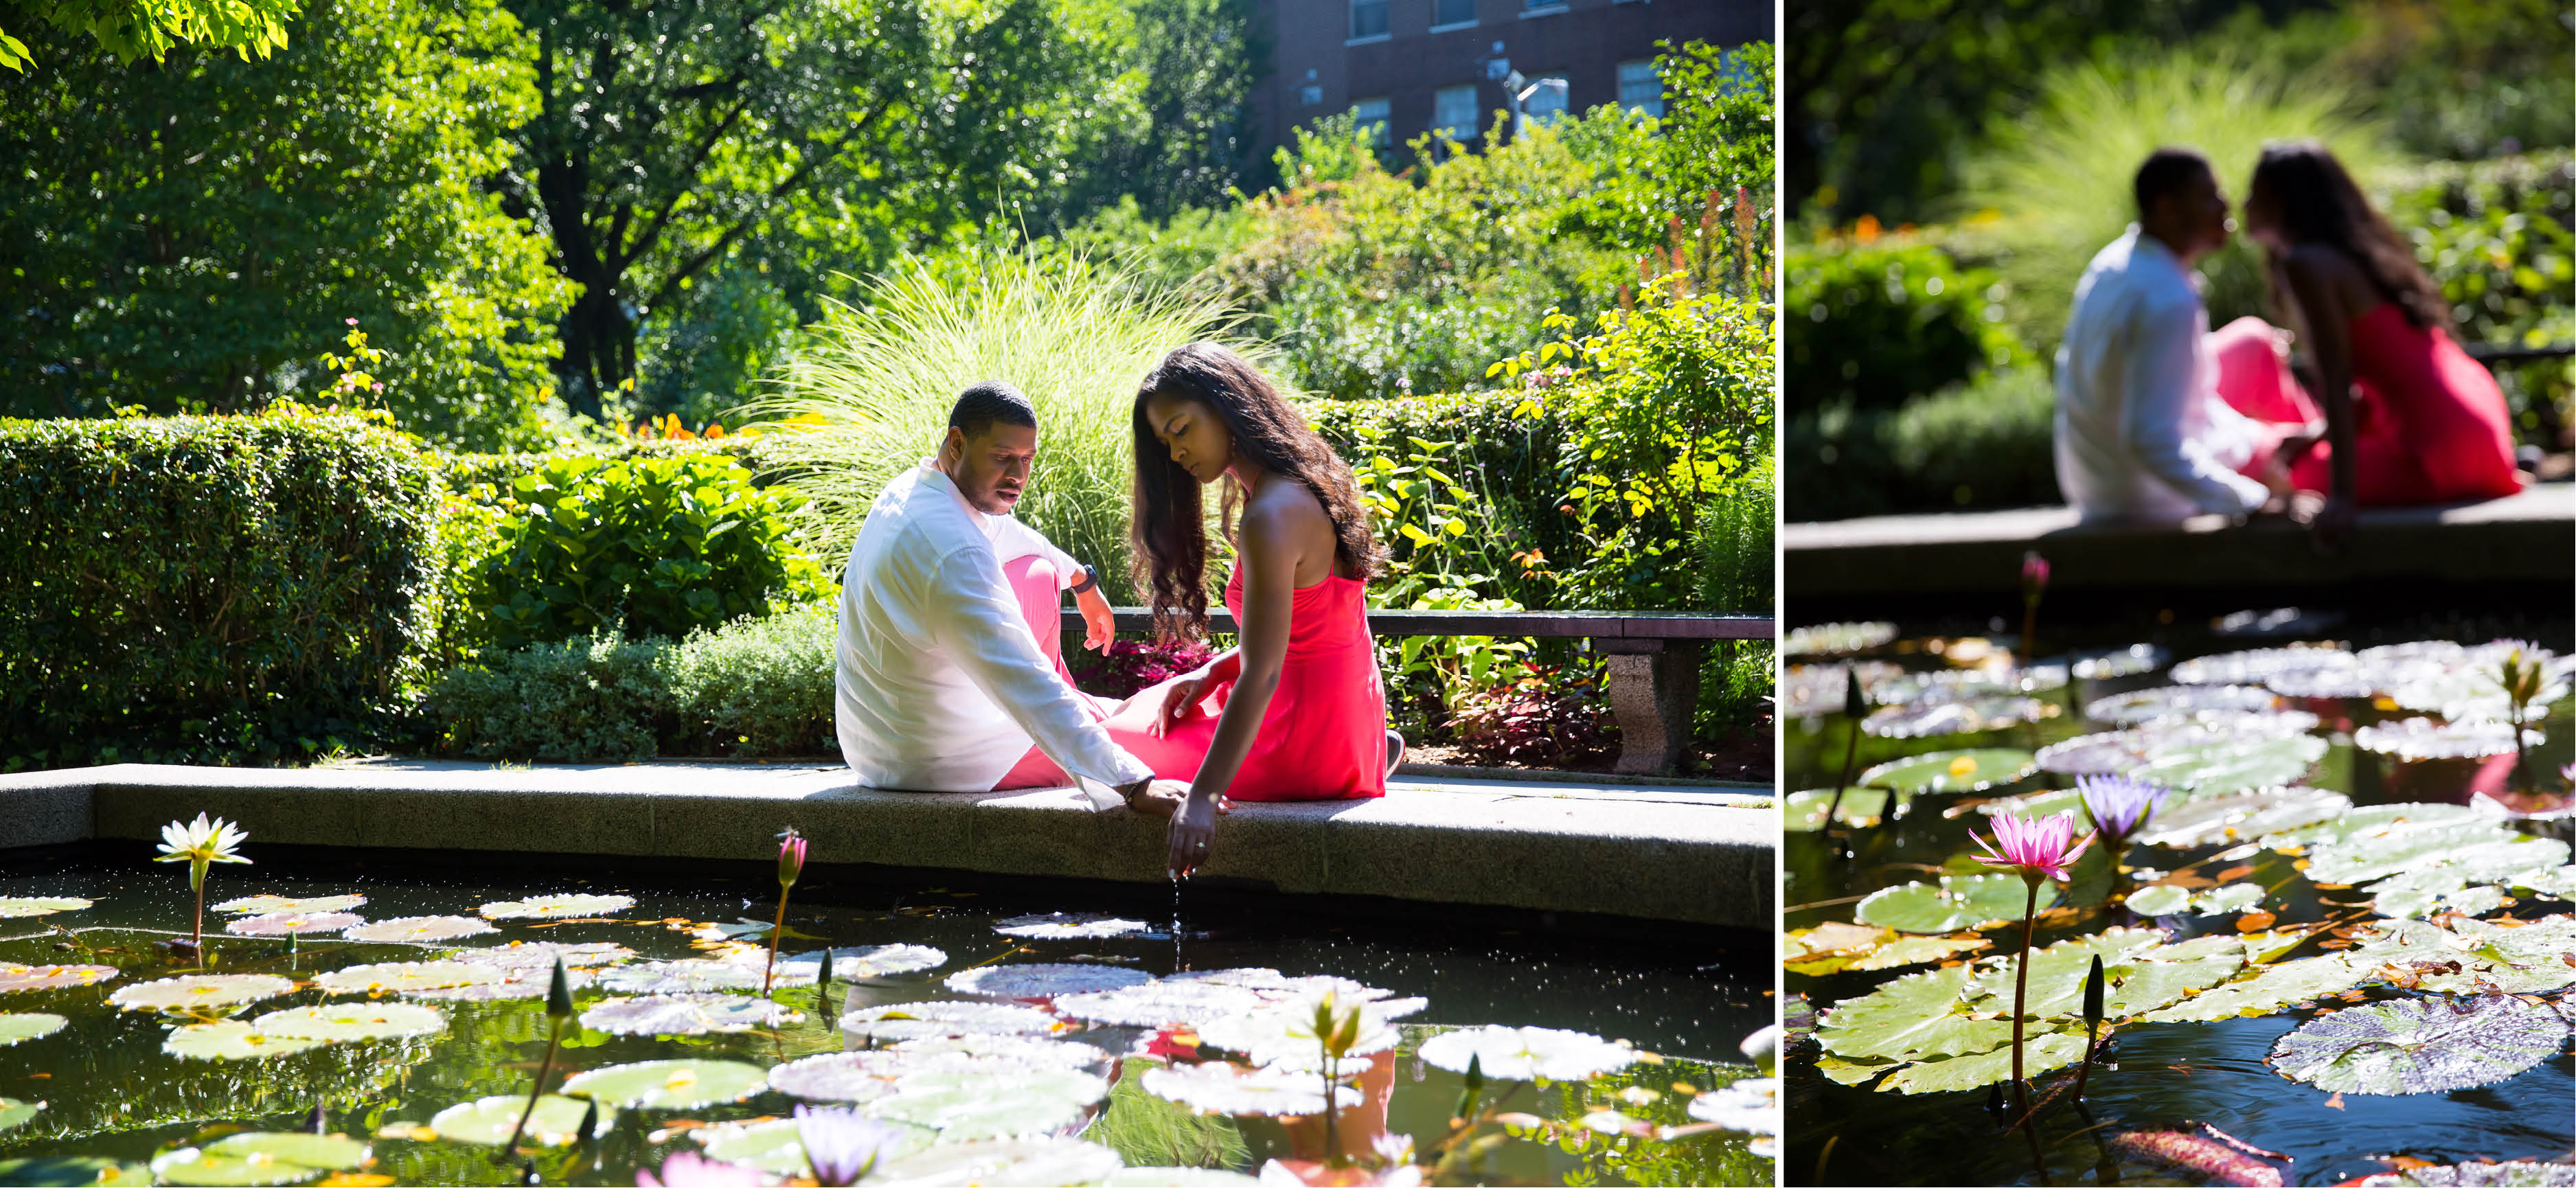 Emma_cleary_photography conservatory gardens17